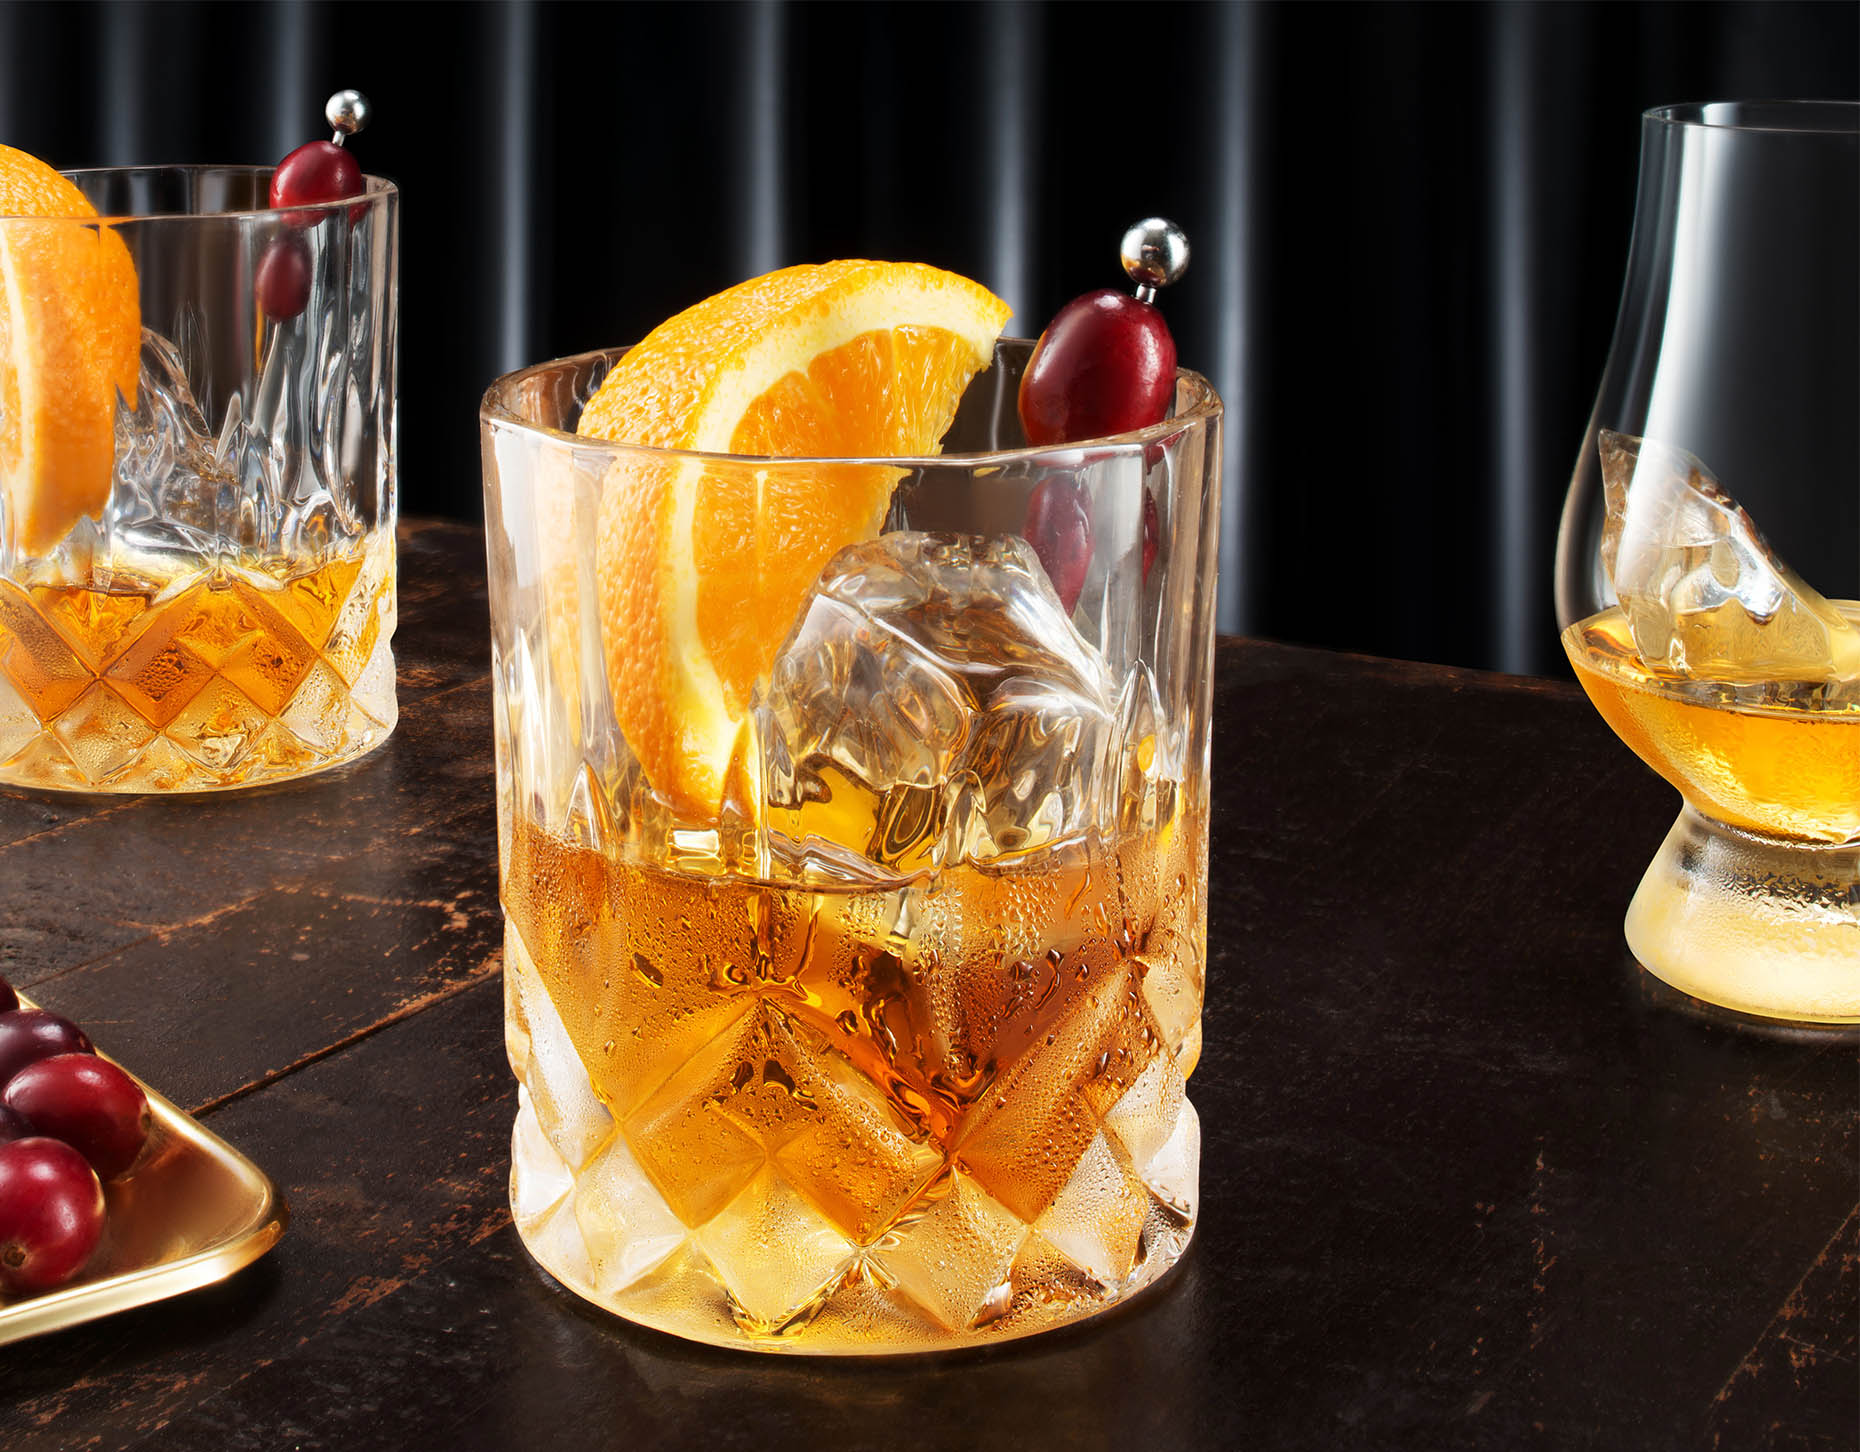 New-york-Beverage-photography-Liquid-phtographer-cocktails-and-garnishes